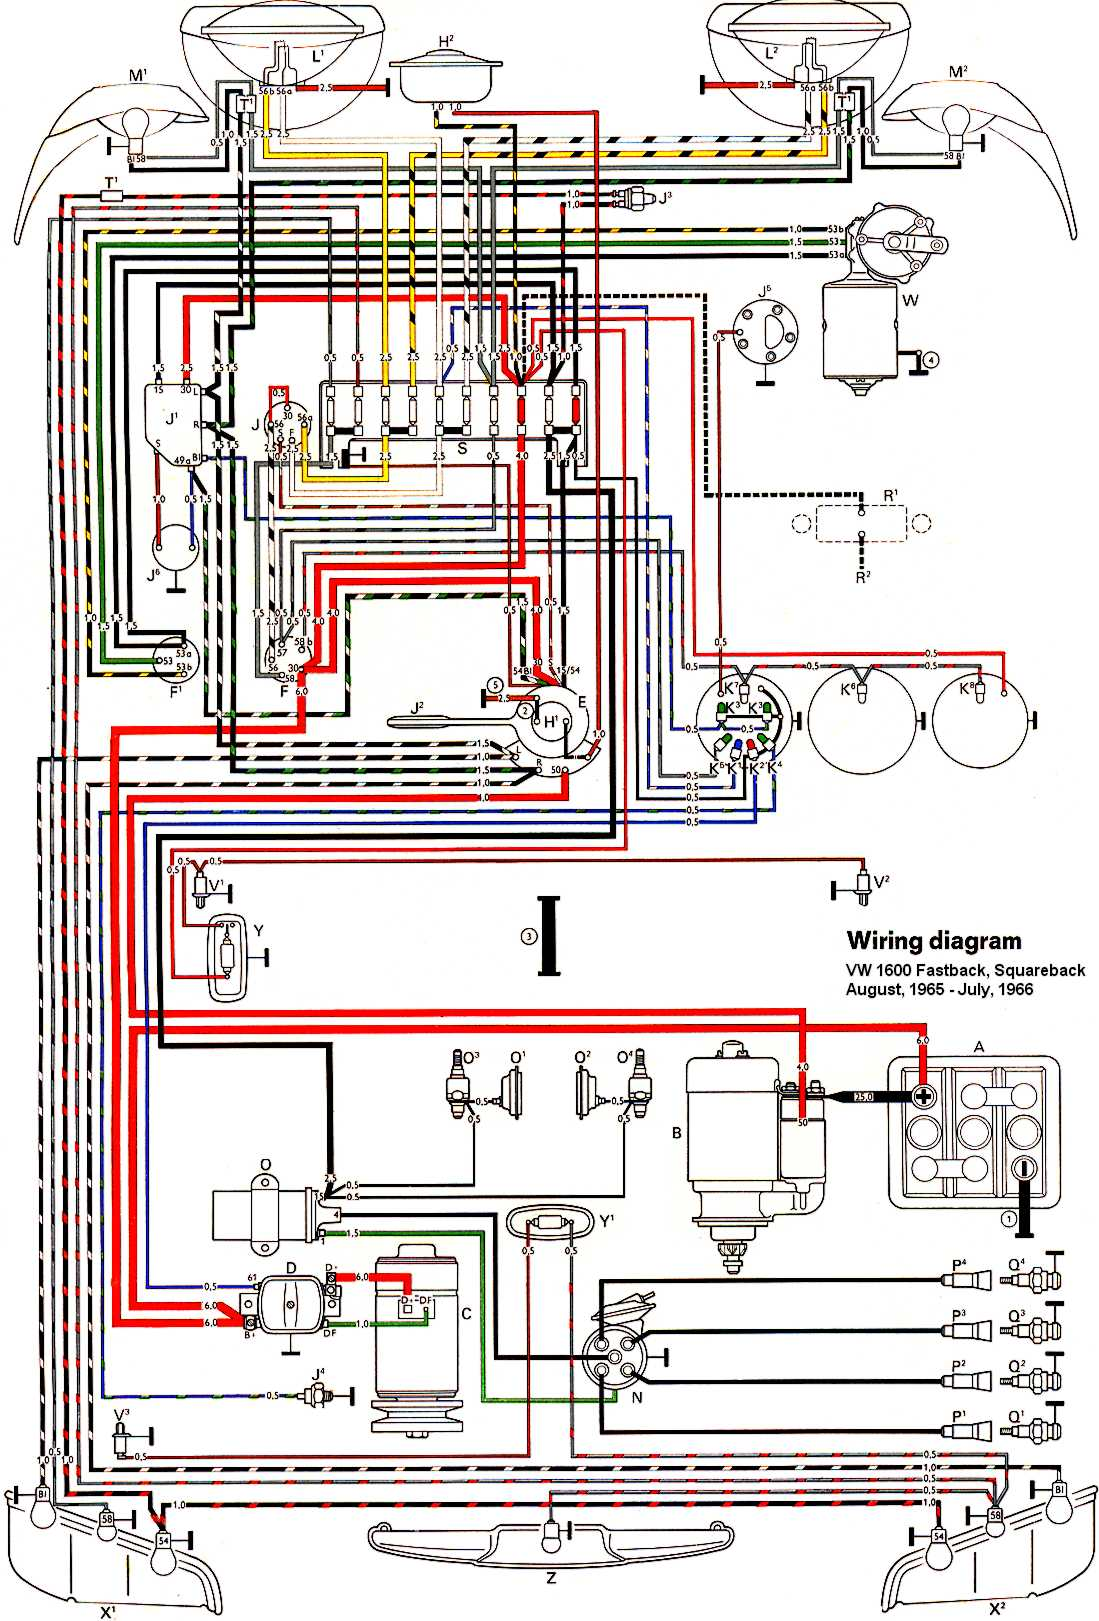 type3_1600_66 vw bus wiring diagram 1965 vw bus wiring diagram \u2022 wiring diagrams 1973 vw beetle wiring diagram at readyjetset.co